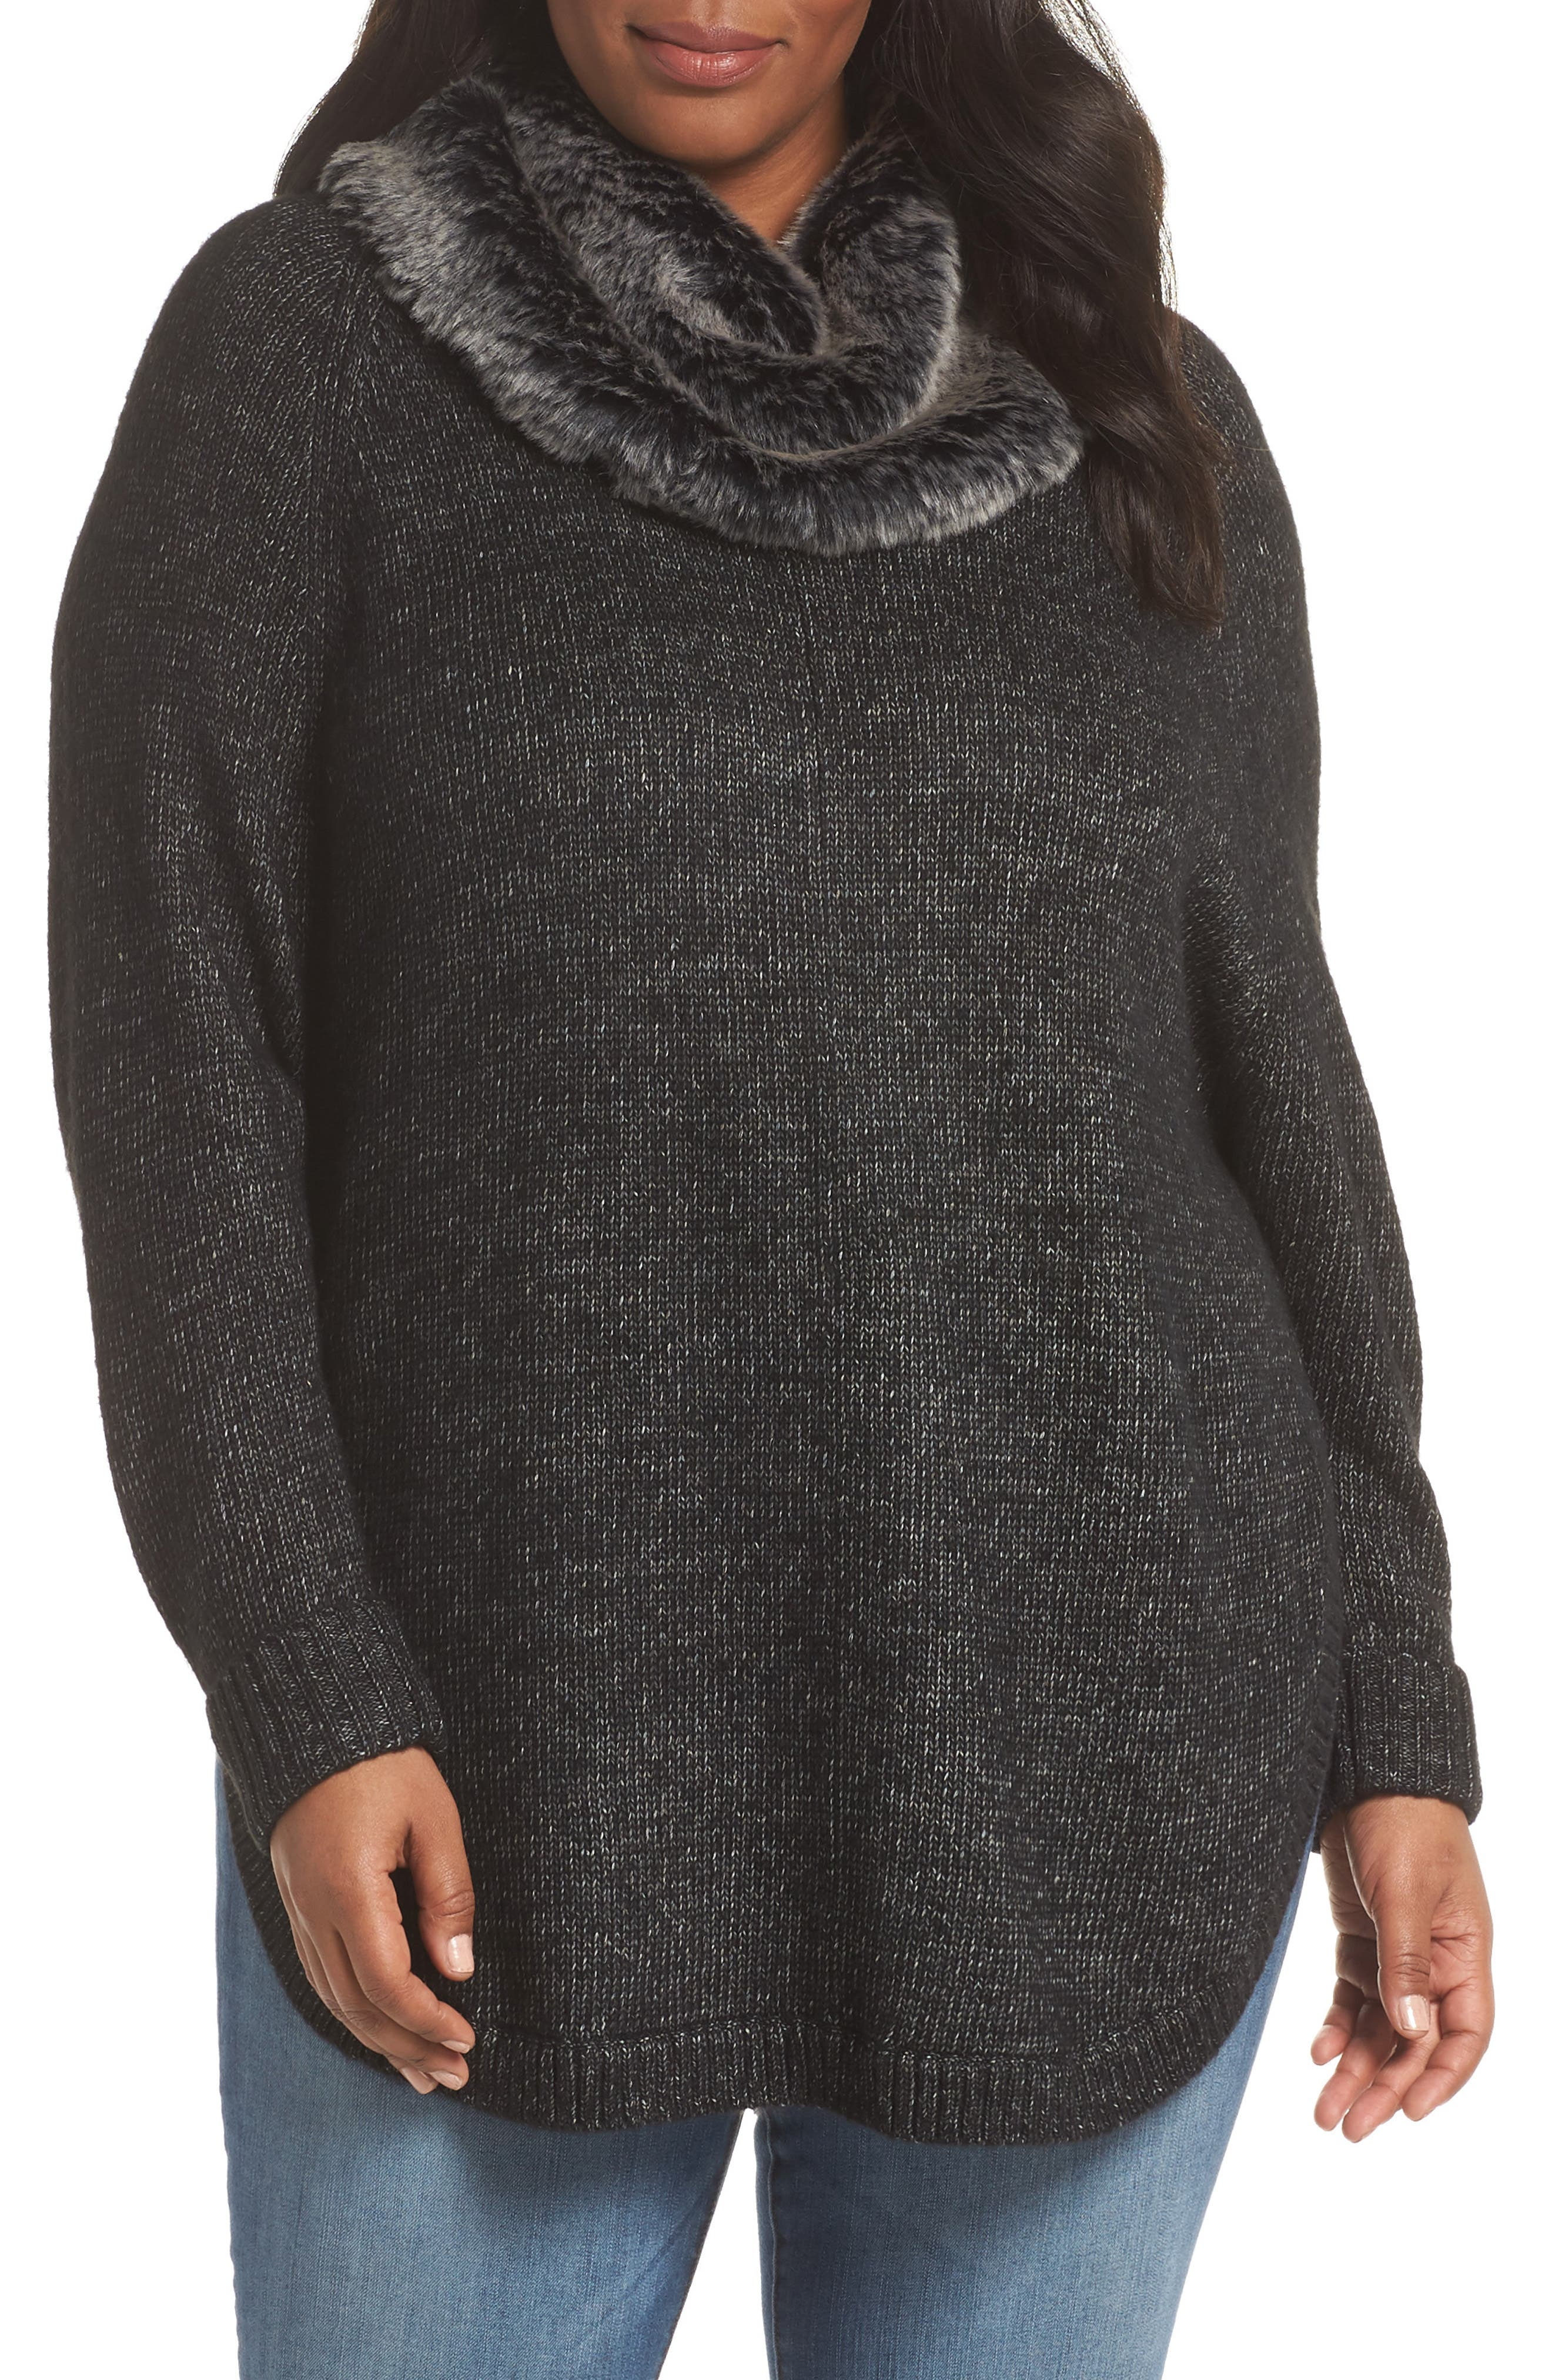 SEJOUR Curved Hem Sweater with Detachable Faux Fur Collar, Main, color, BLACK HEATHER